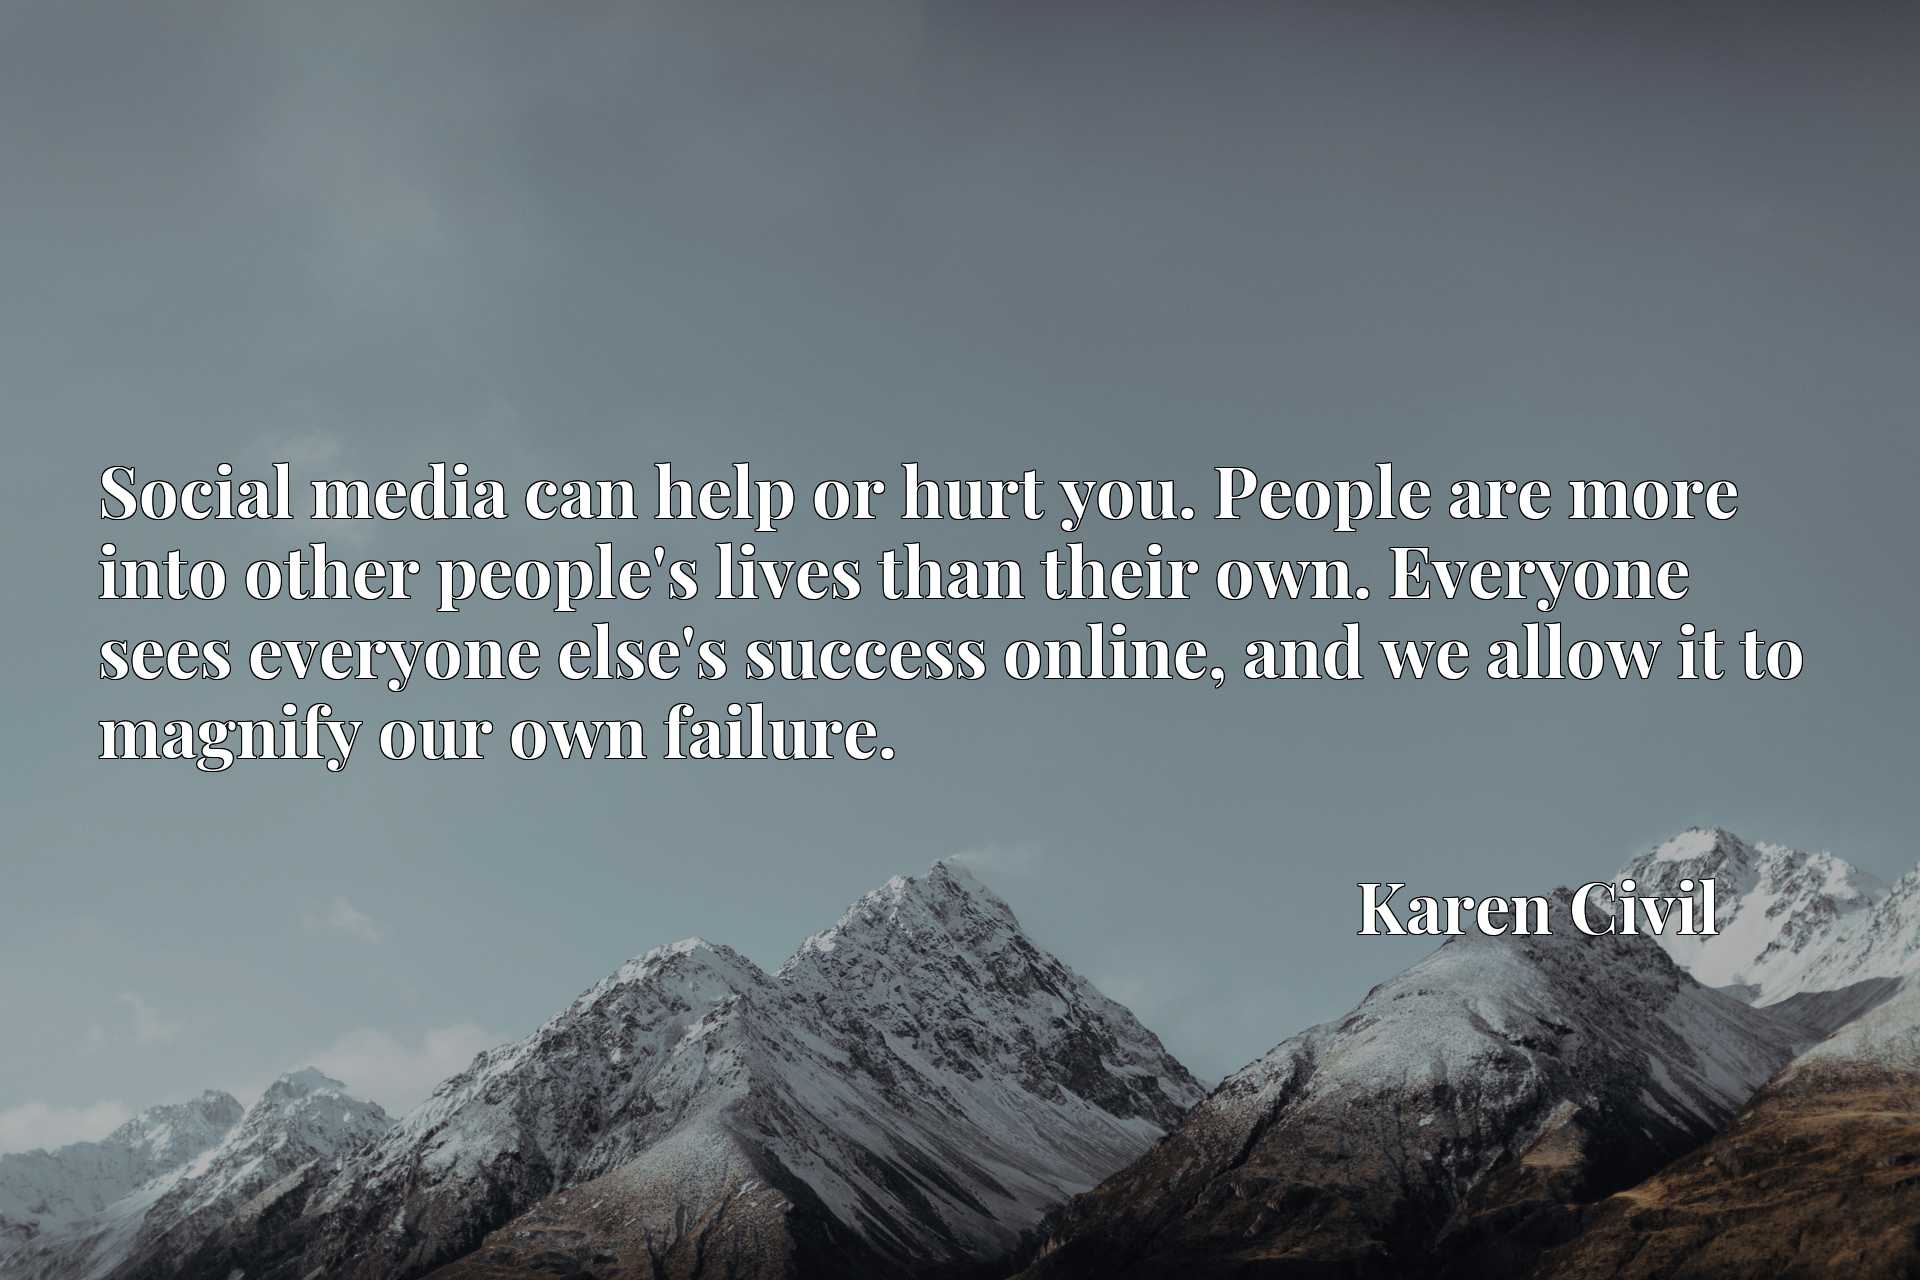 Social media can help or hurt you. People are more into other people's lives than their own. Everyone sees everyone else's success online, and we allow it to magnify our own failure.